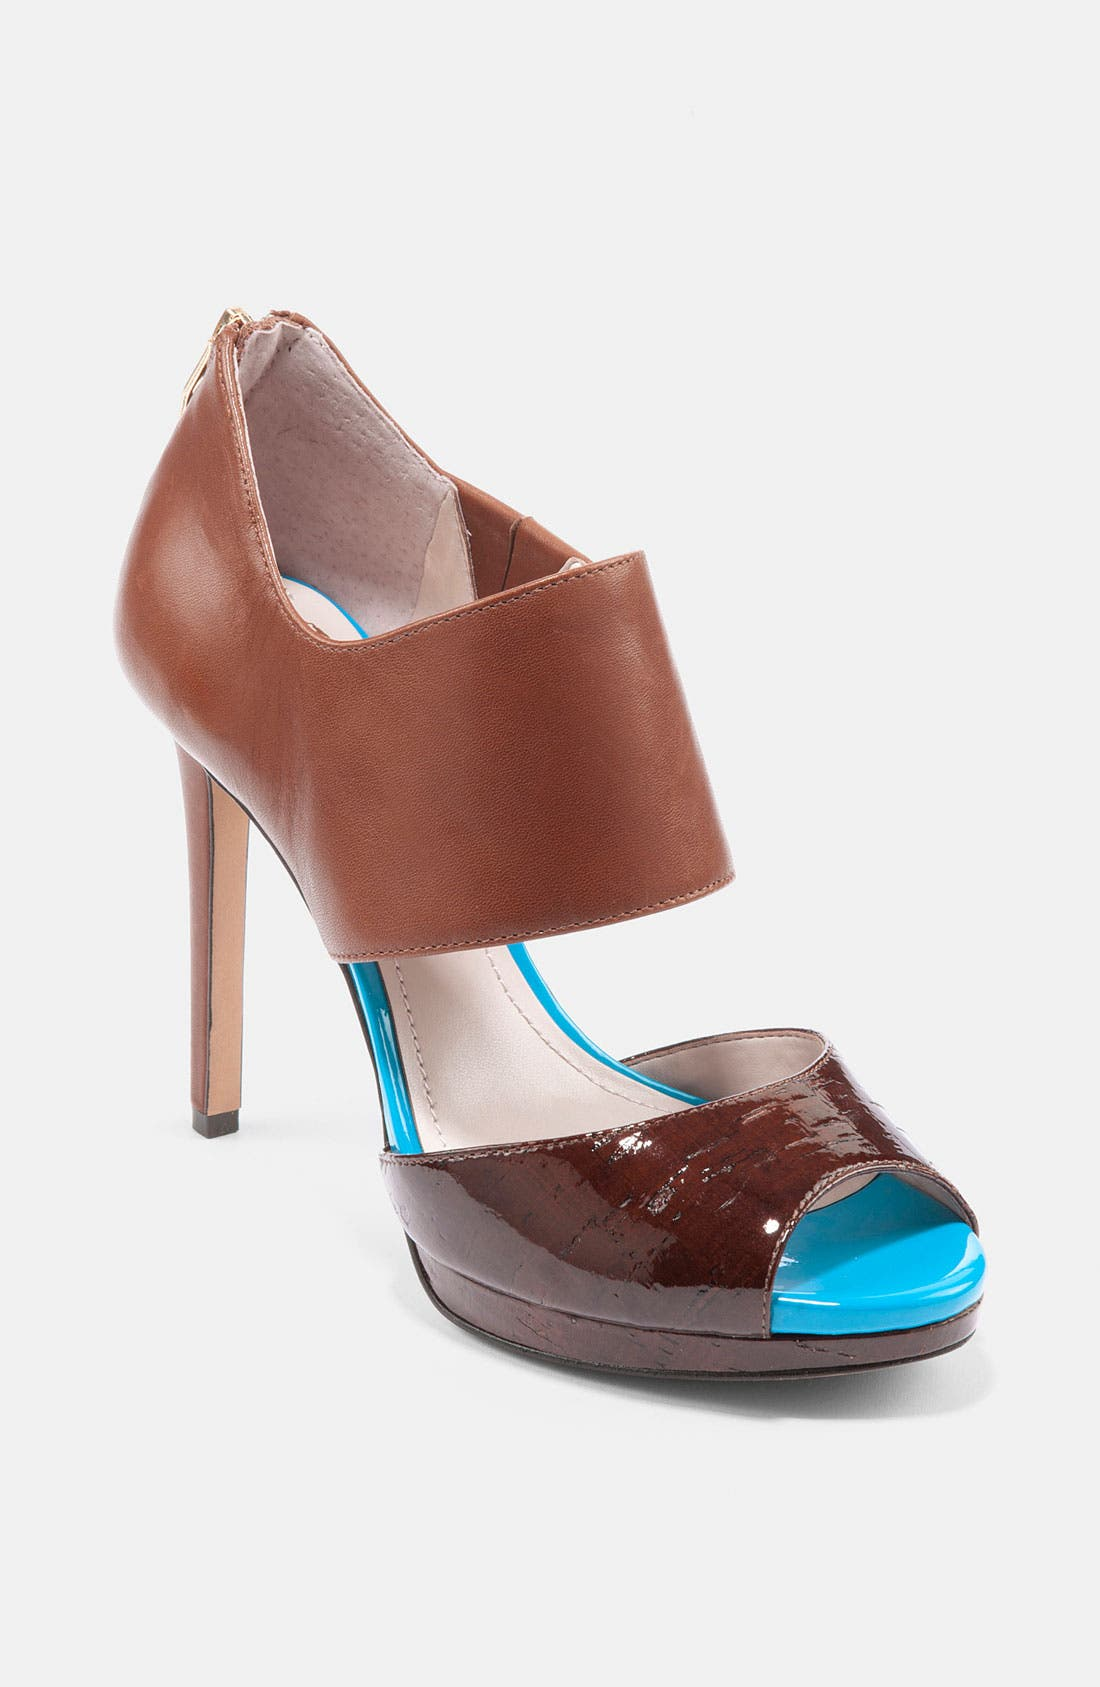 Alternate Image 1 Selected - Vince Camuto 'Canaday' Sandal